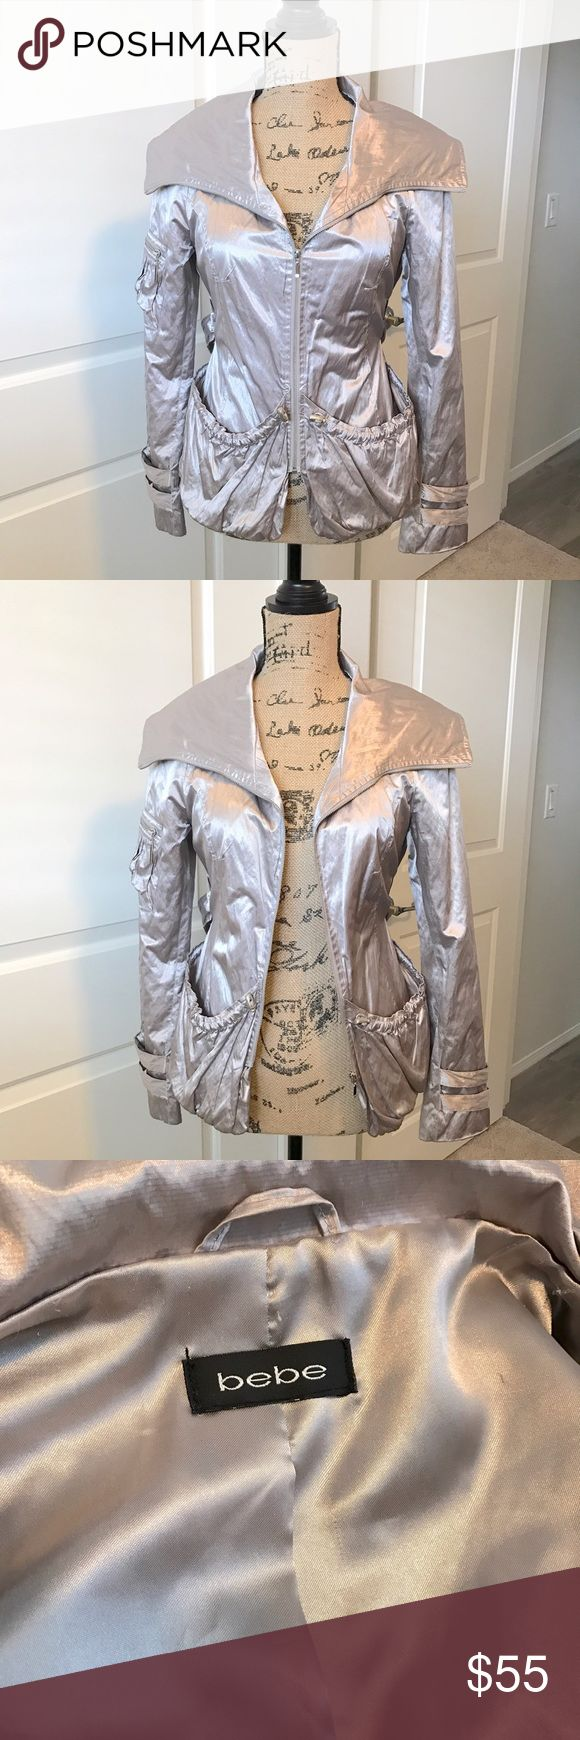 BEBE women's metallic silver zip up jacket Super chic women's metallic silver zip up jacket. Gently used. In excellent condition. Lots of compliments when I wore this beauty :) bebe Jackets & Coats